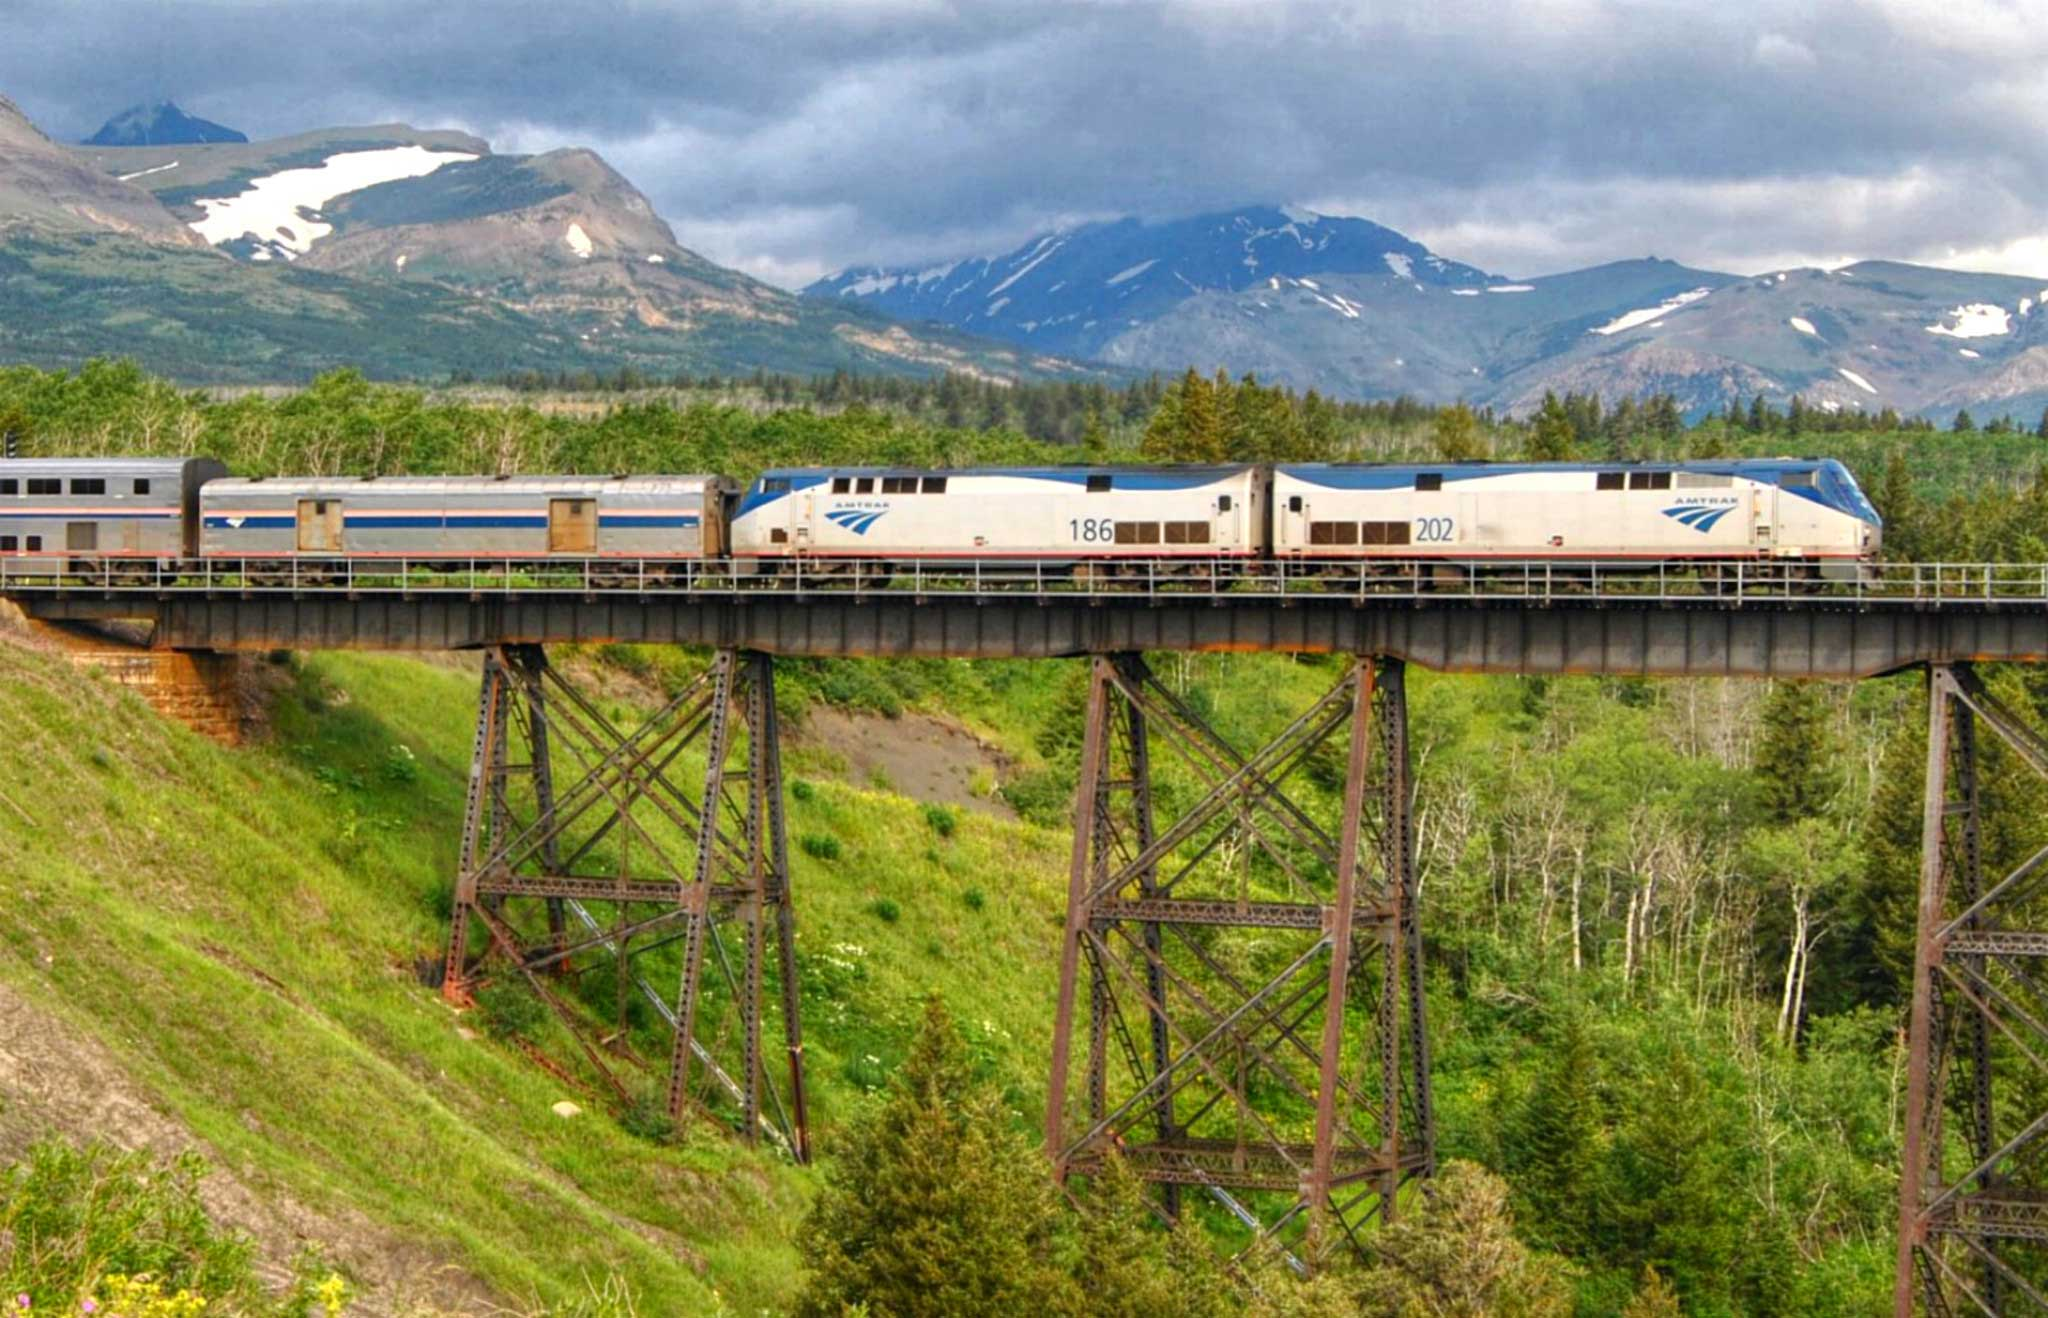 view of train to glacier in the distance as it crosses elevated bridge over green valley